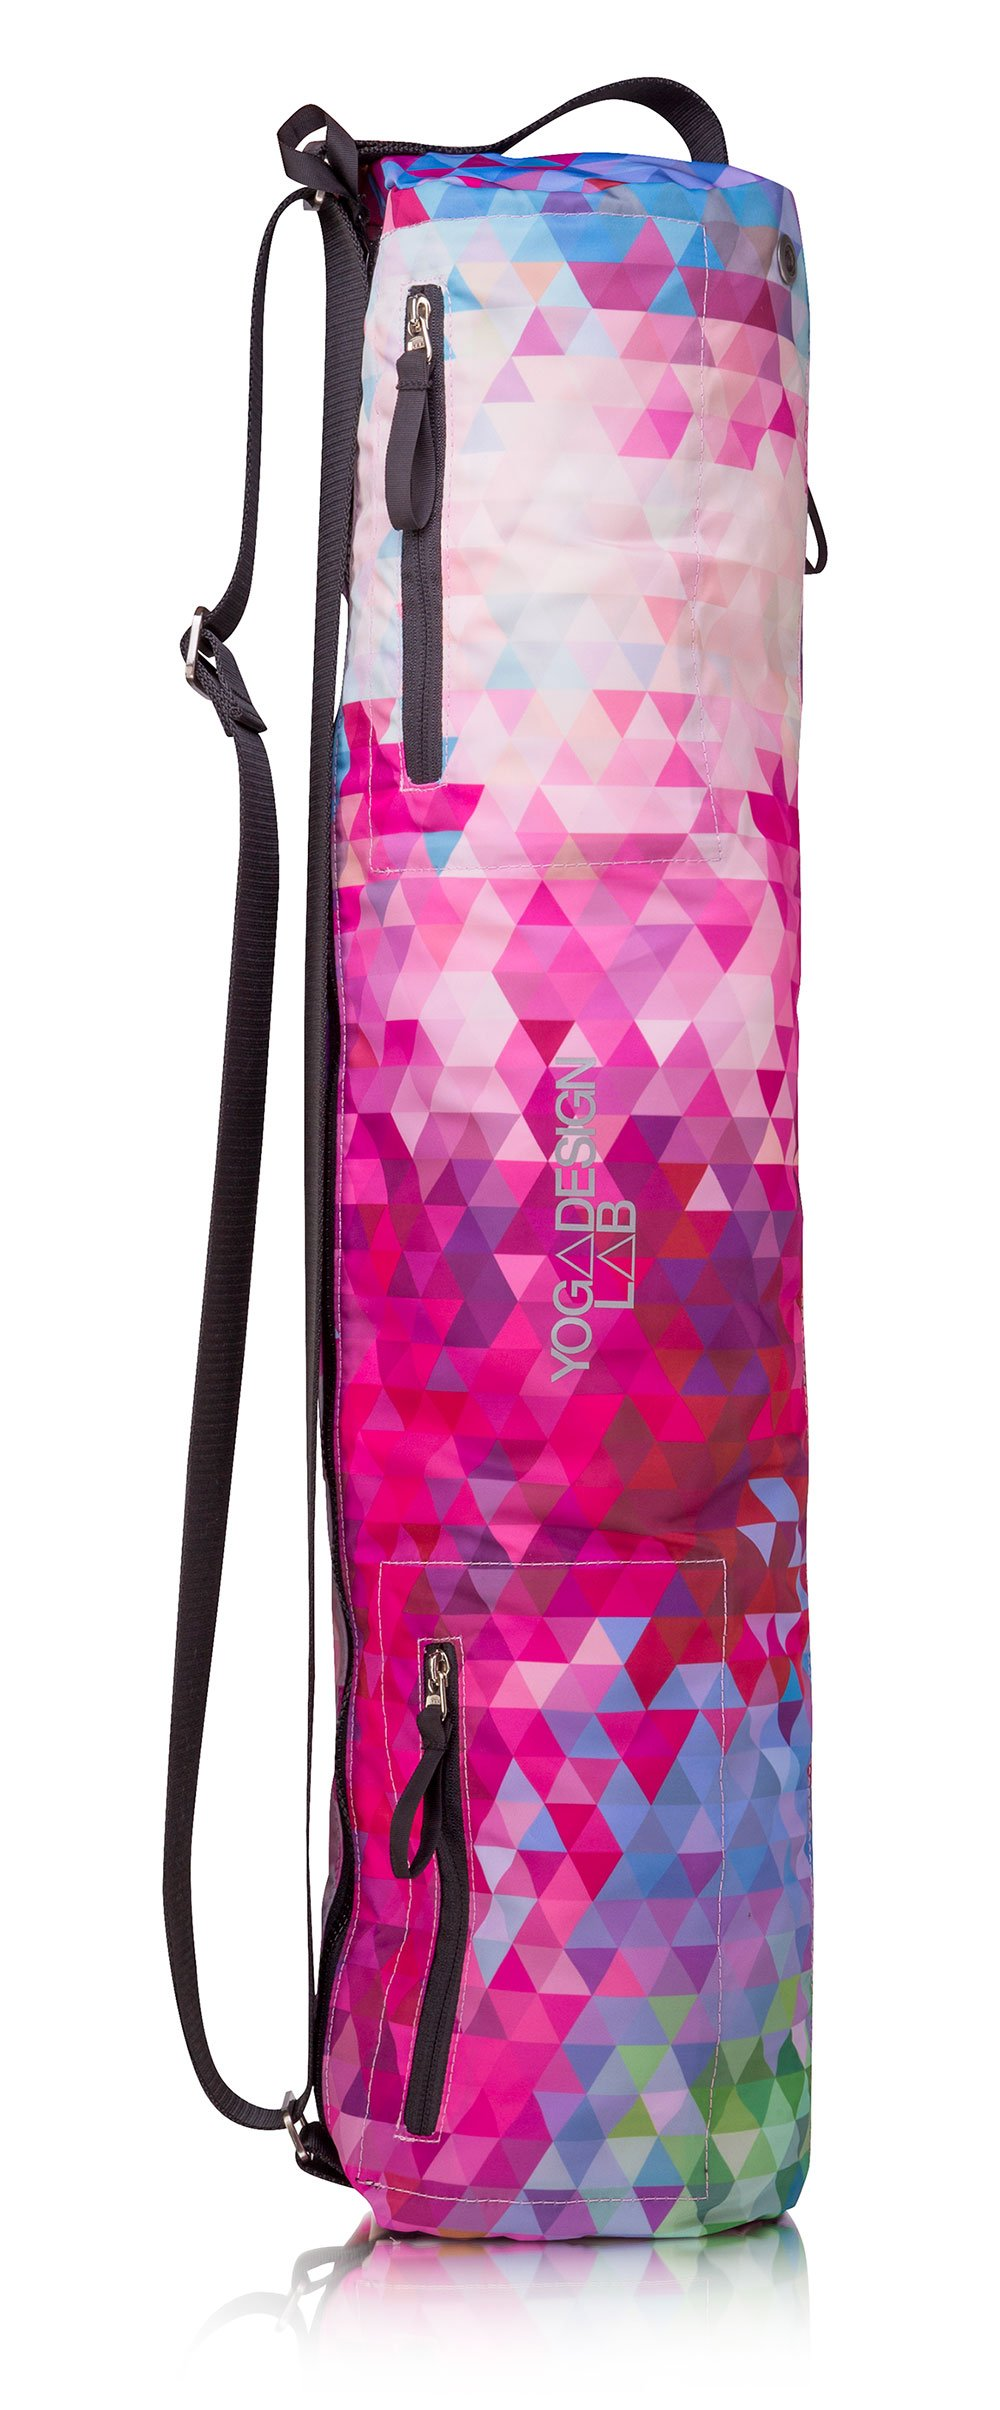 YOGA DESIGN LAB The Yoga MAT Bag Premium, All-in-One, Lightweight, Multi Pockets, Extra Durable | Designed in Bali | The Travel Yoga Bag That Fits Your Mat & Your Life!